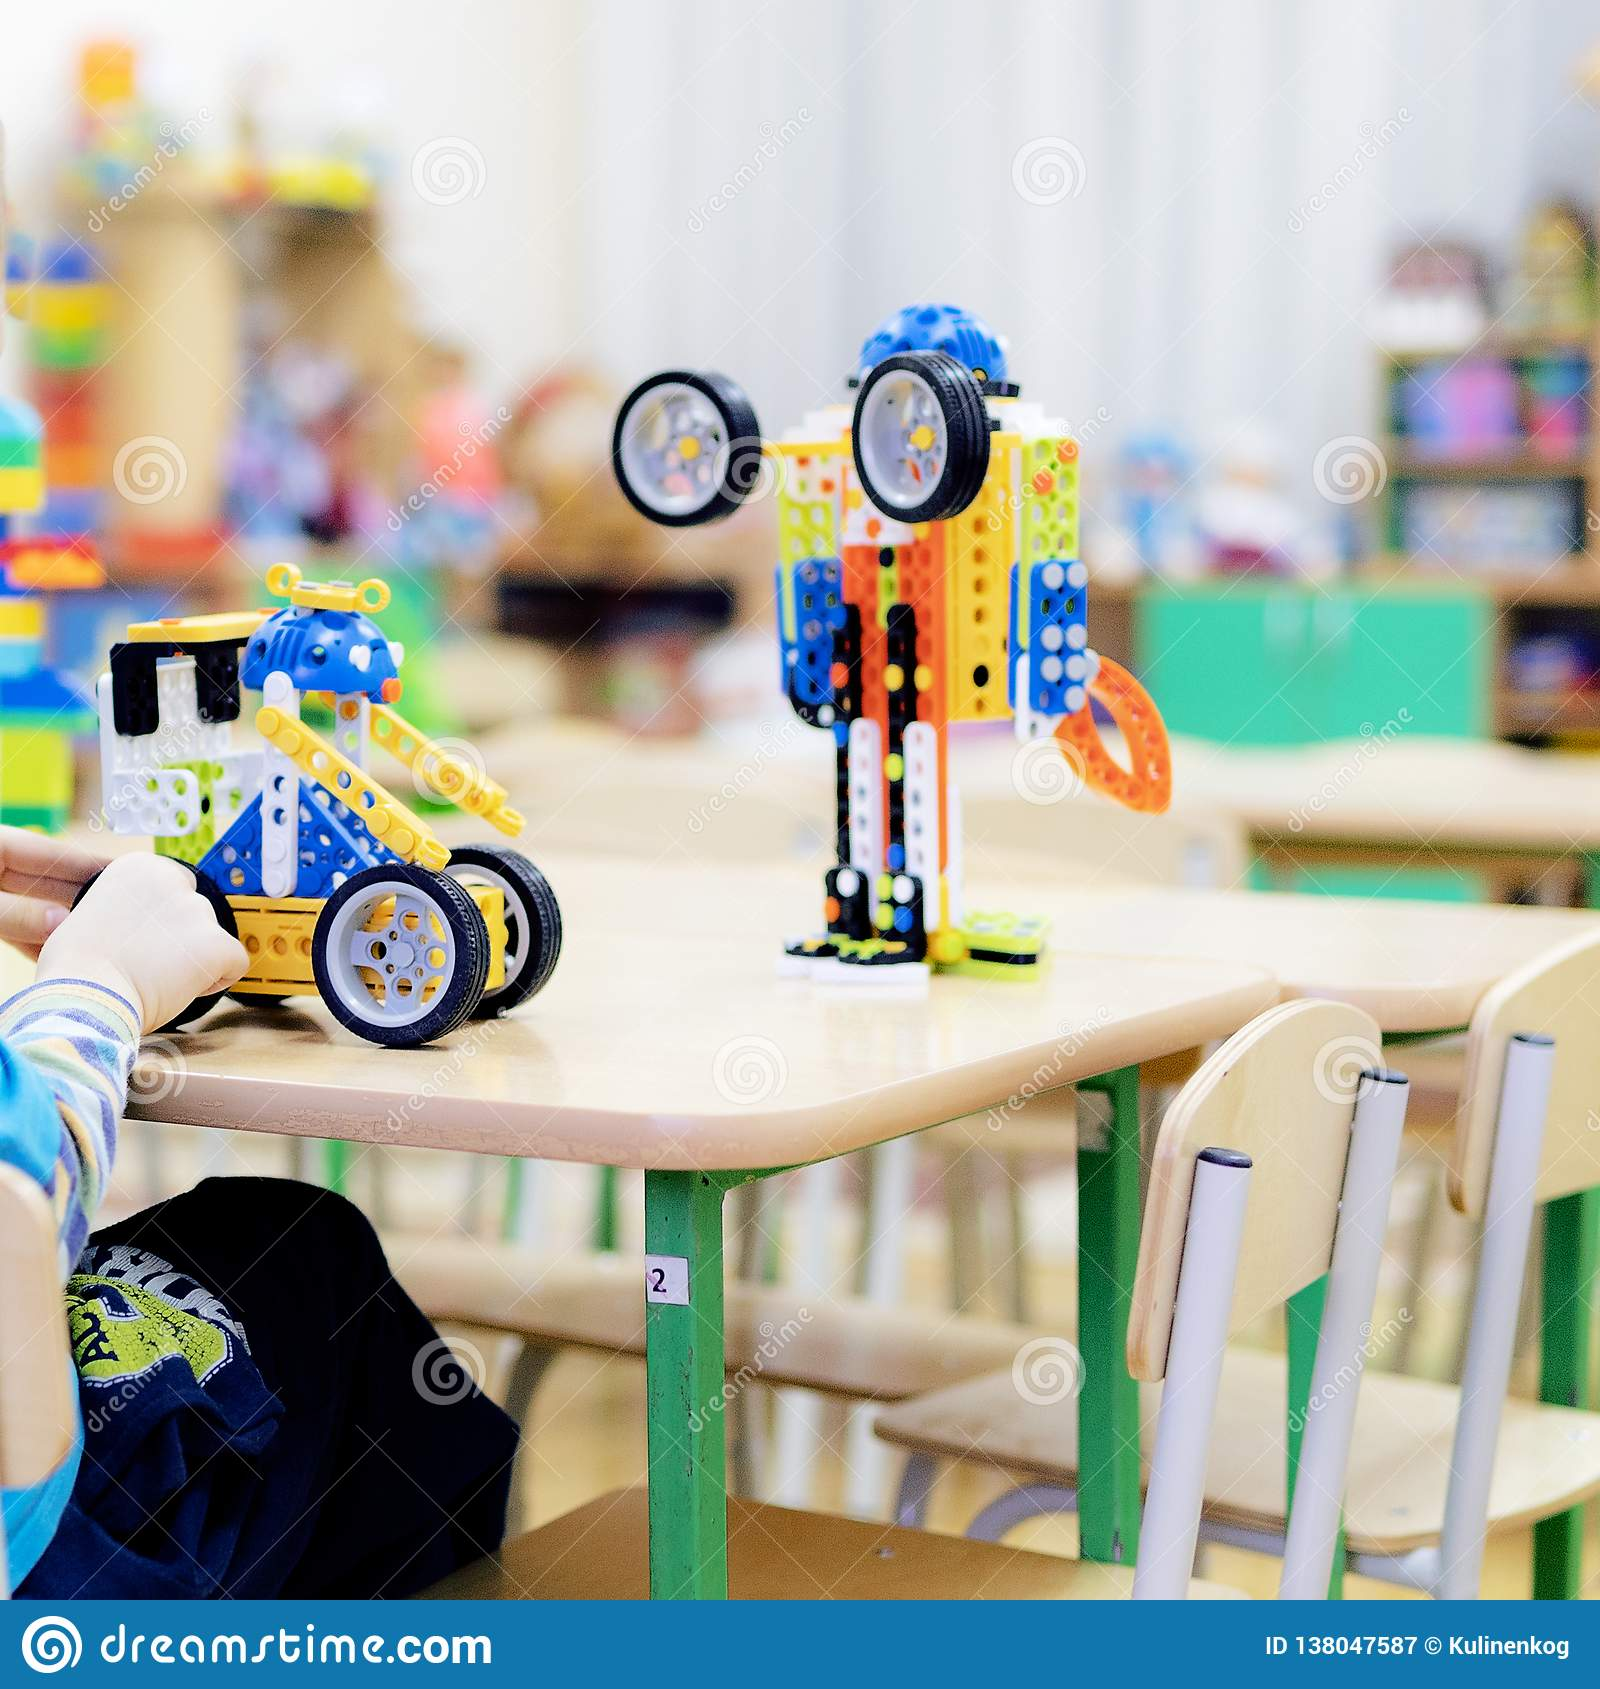 Children playing together at daycare with educational toys indoors.